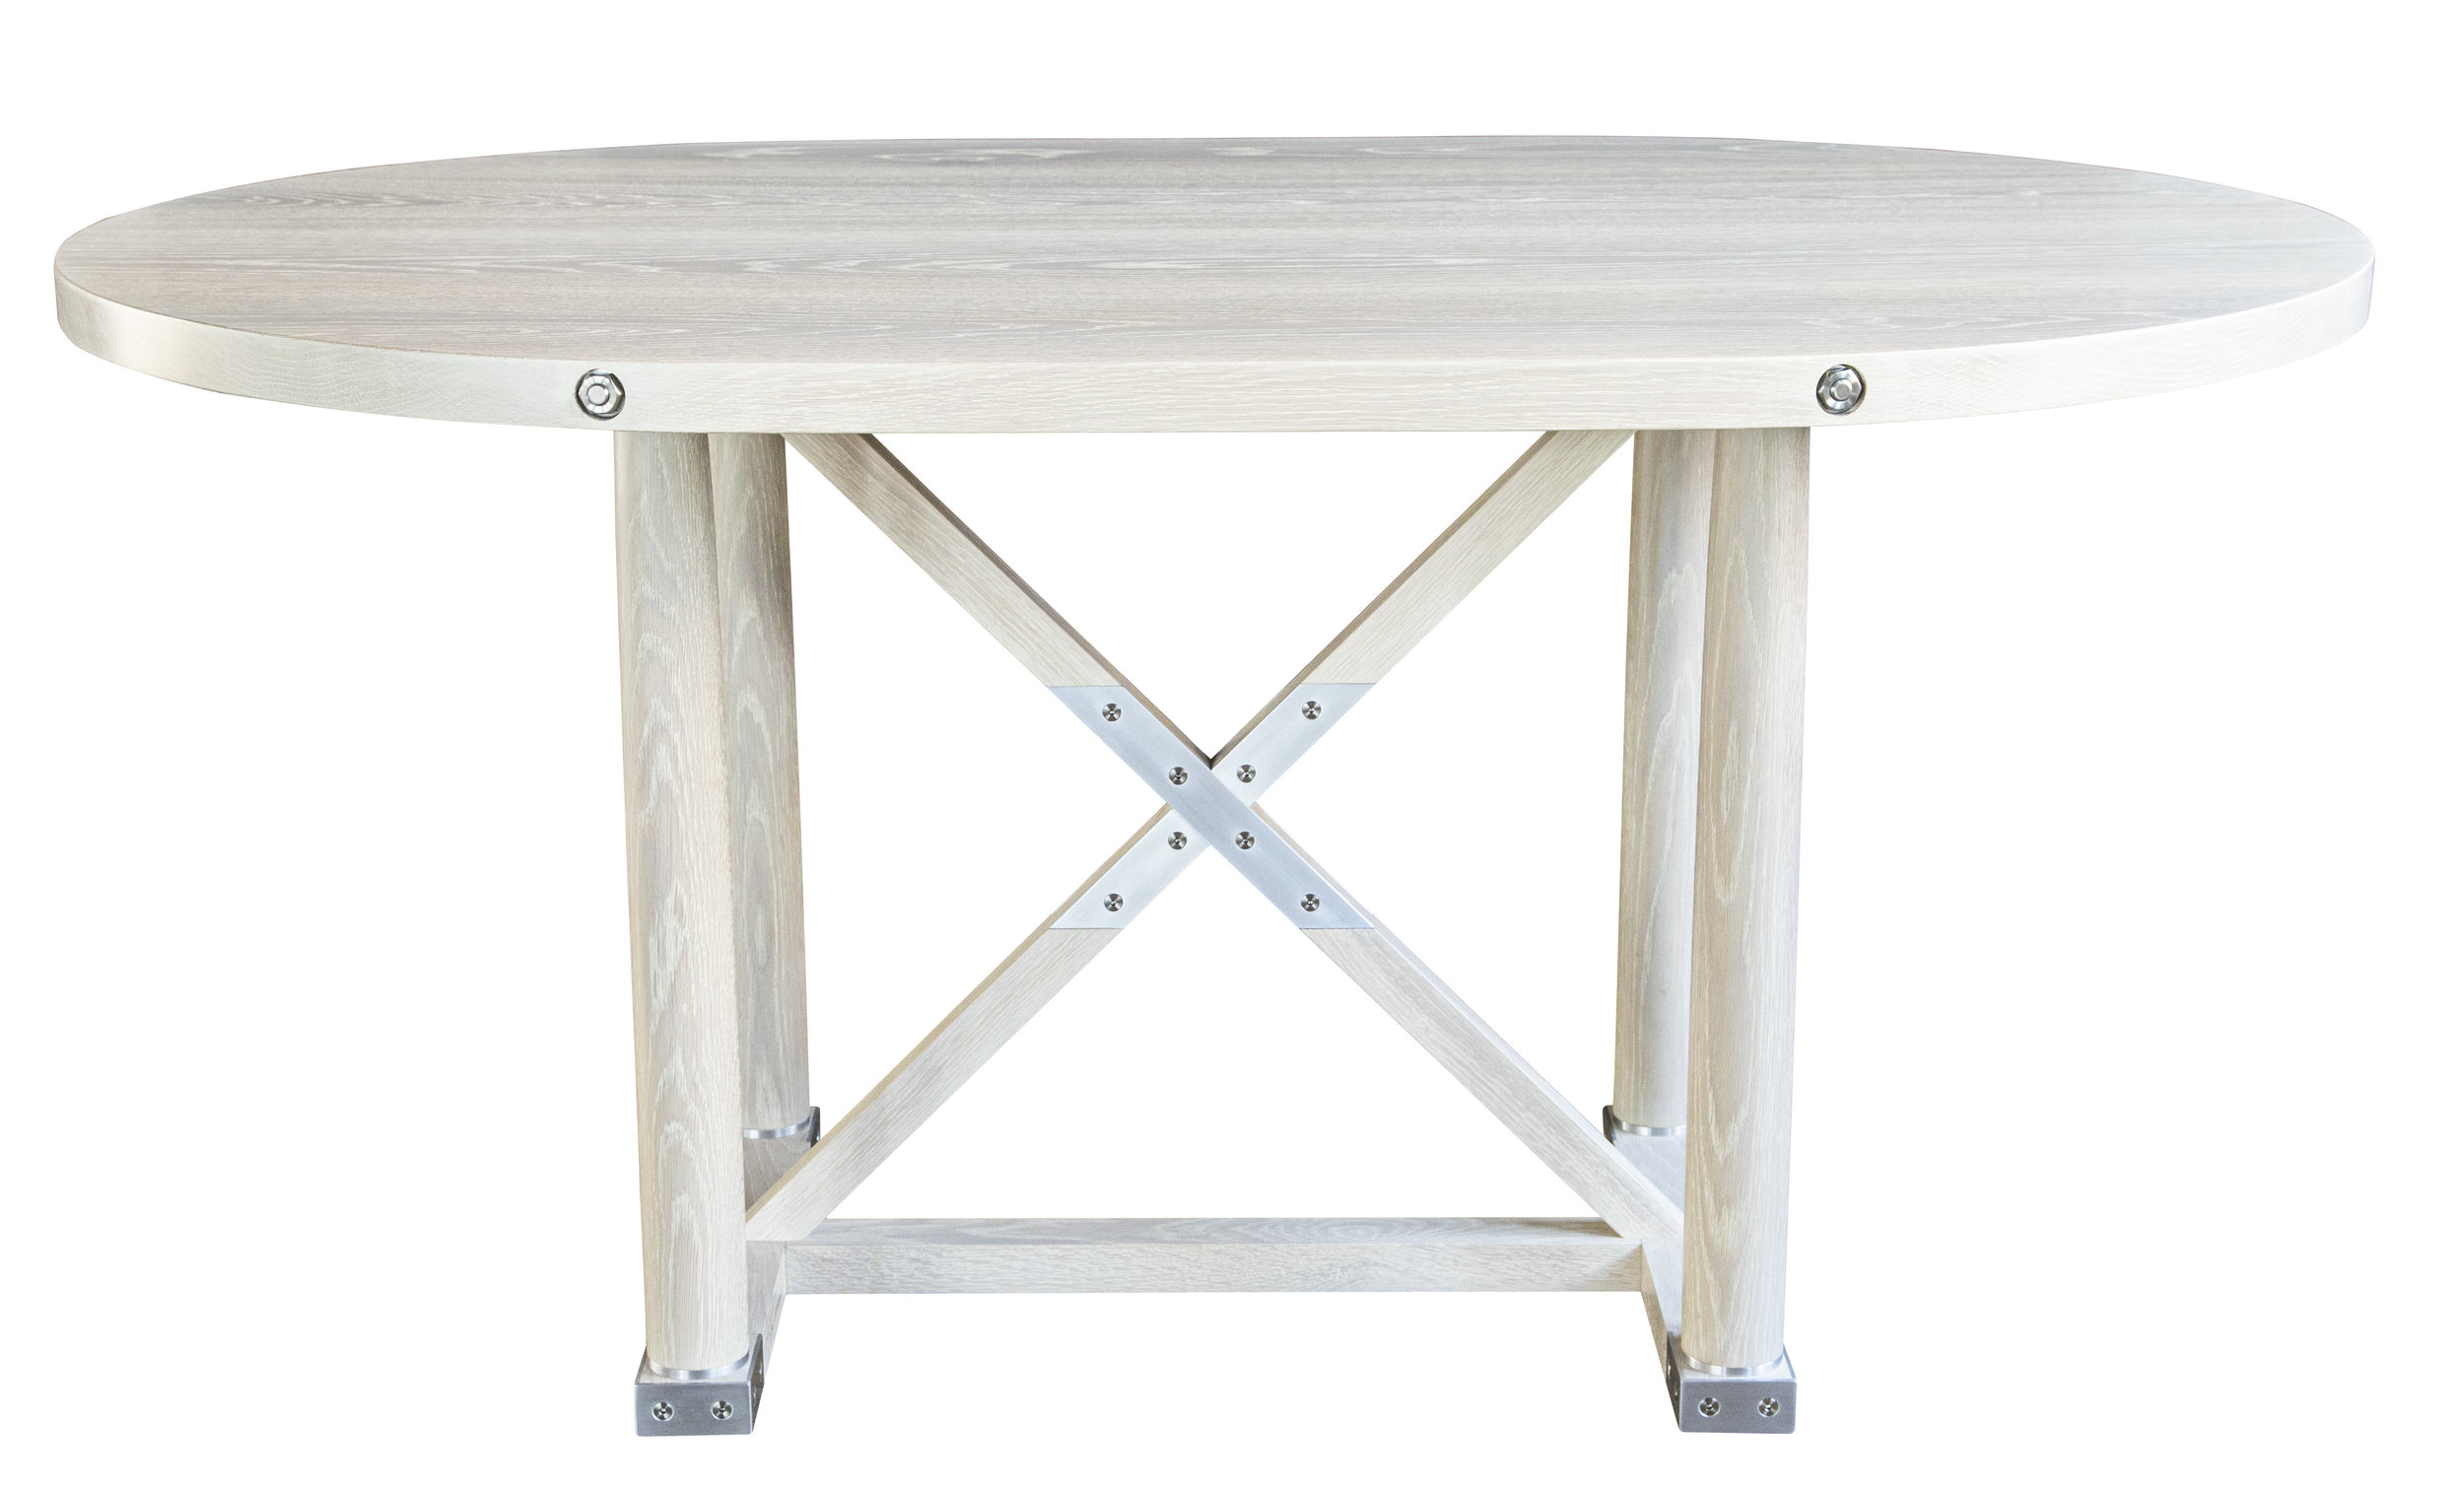 Carden Dining Table - Racetrack Top